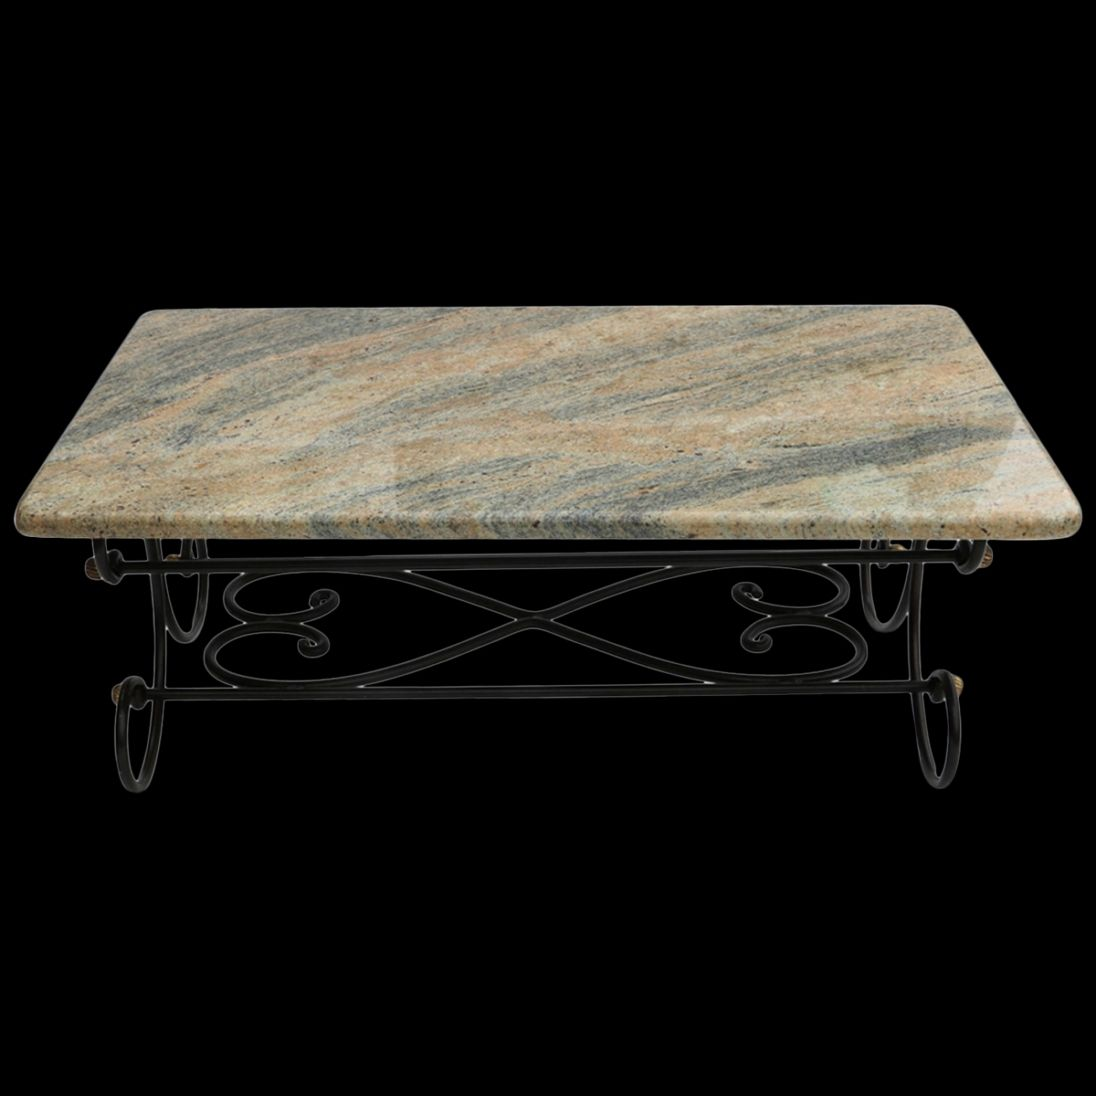 granite coffee table - most popular interior paint colors ...